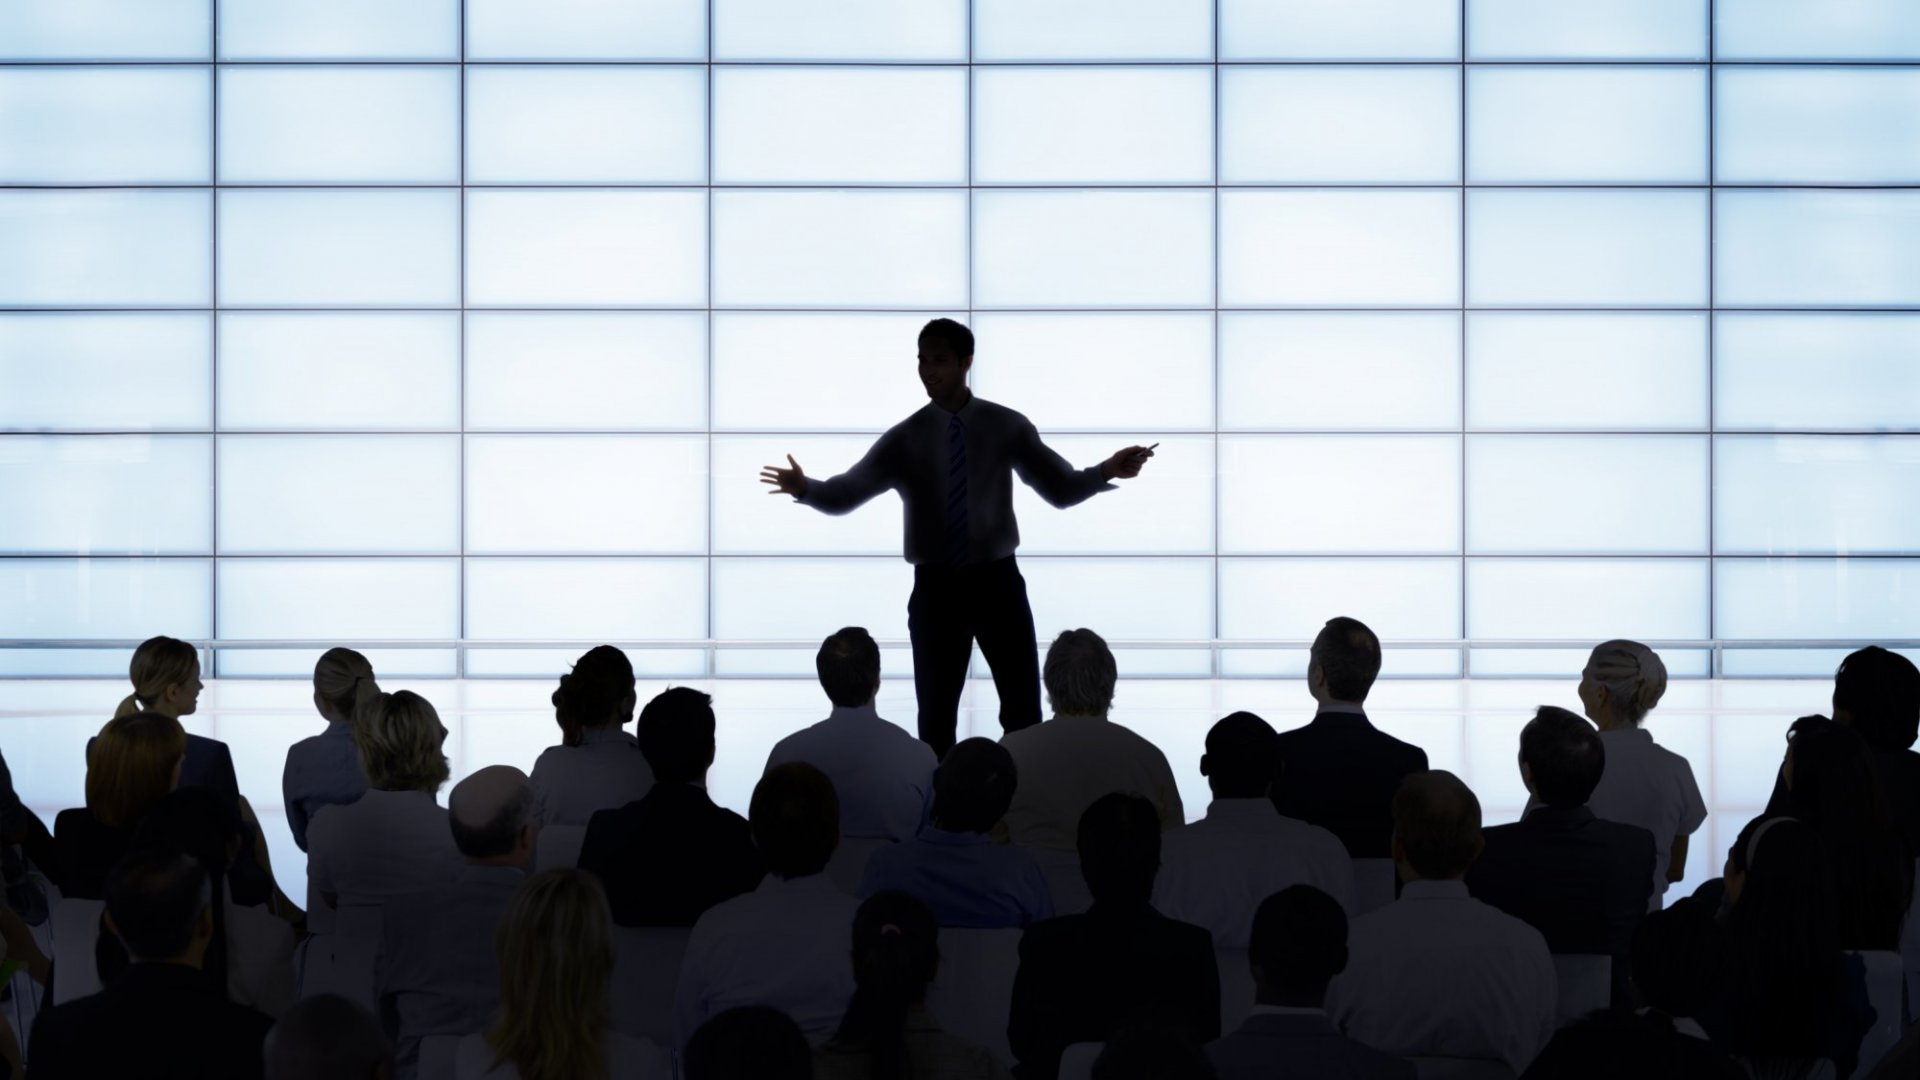 The Best Public Speakers Do This 1 Thing Regularly (and You Should Too)